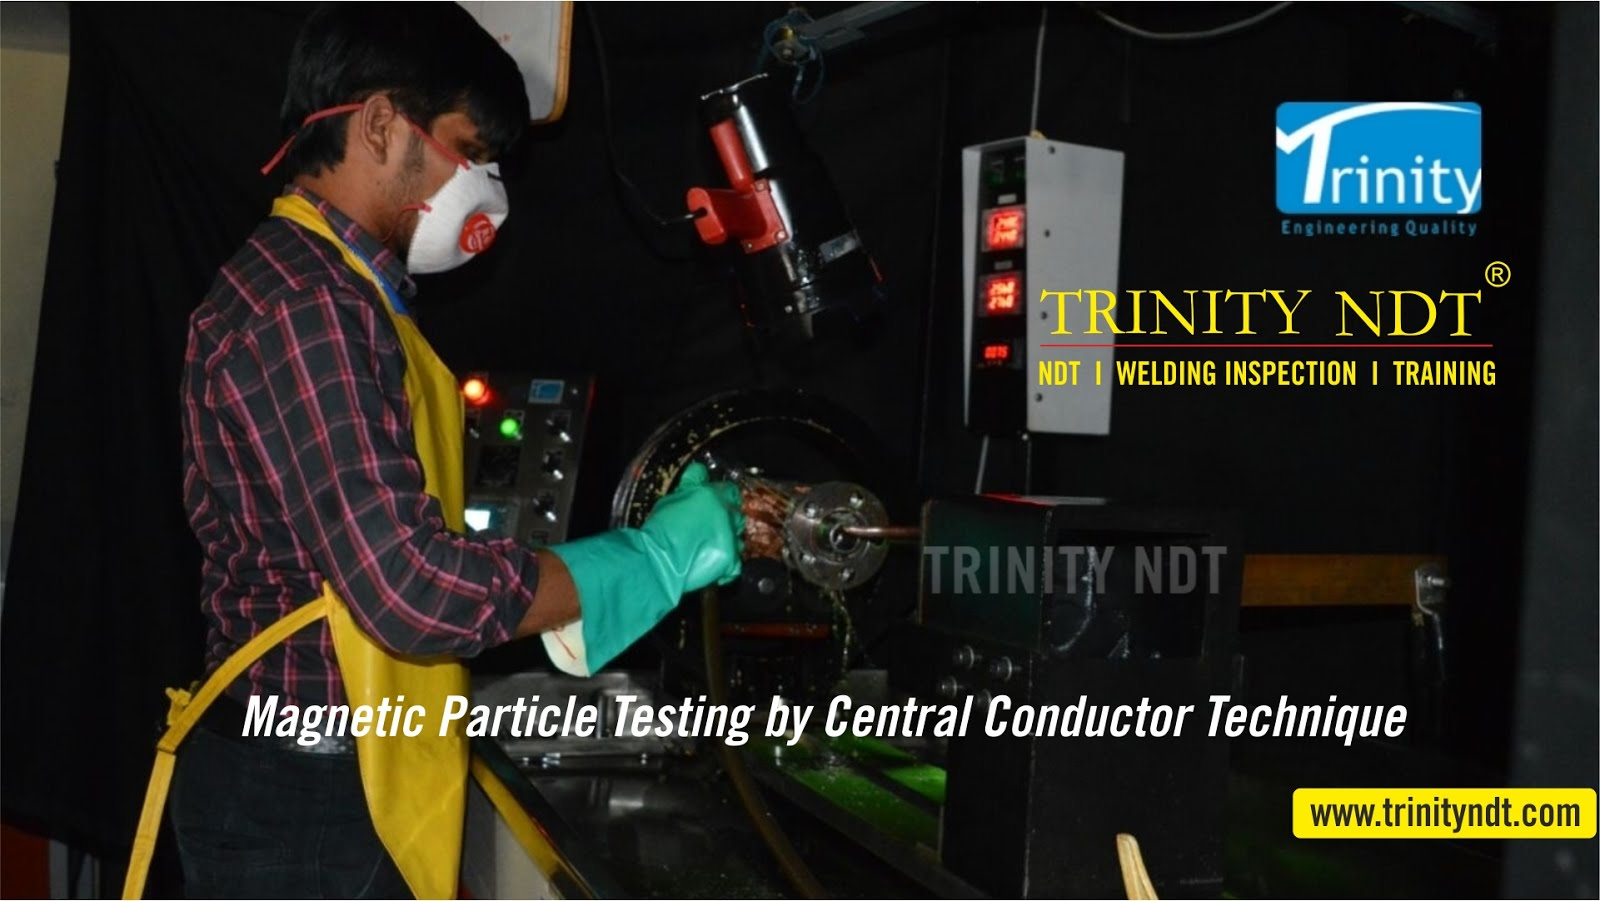 Trinity NDT - Aerospace NDT Labs, Magnetic Particle Inspection Facility